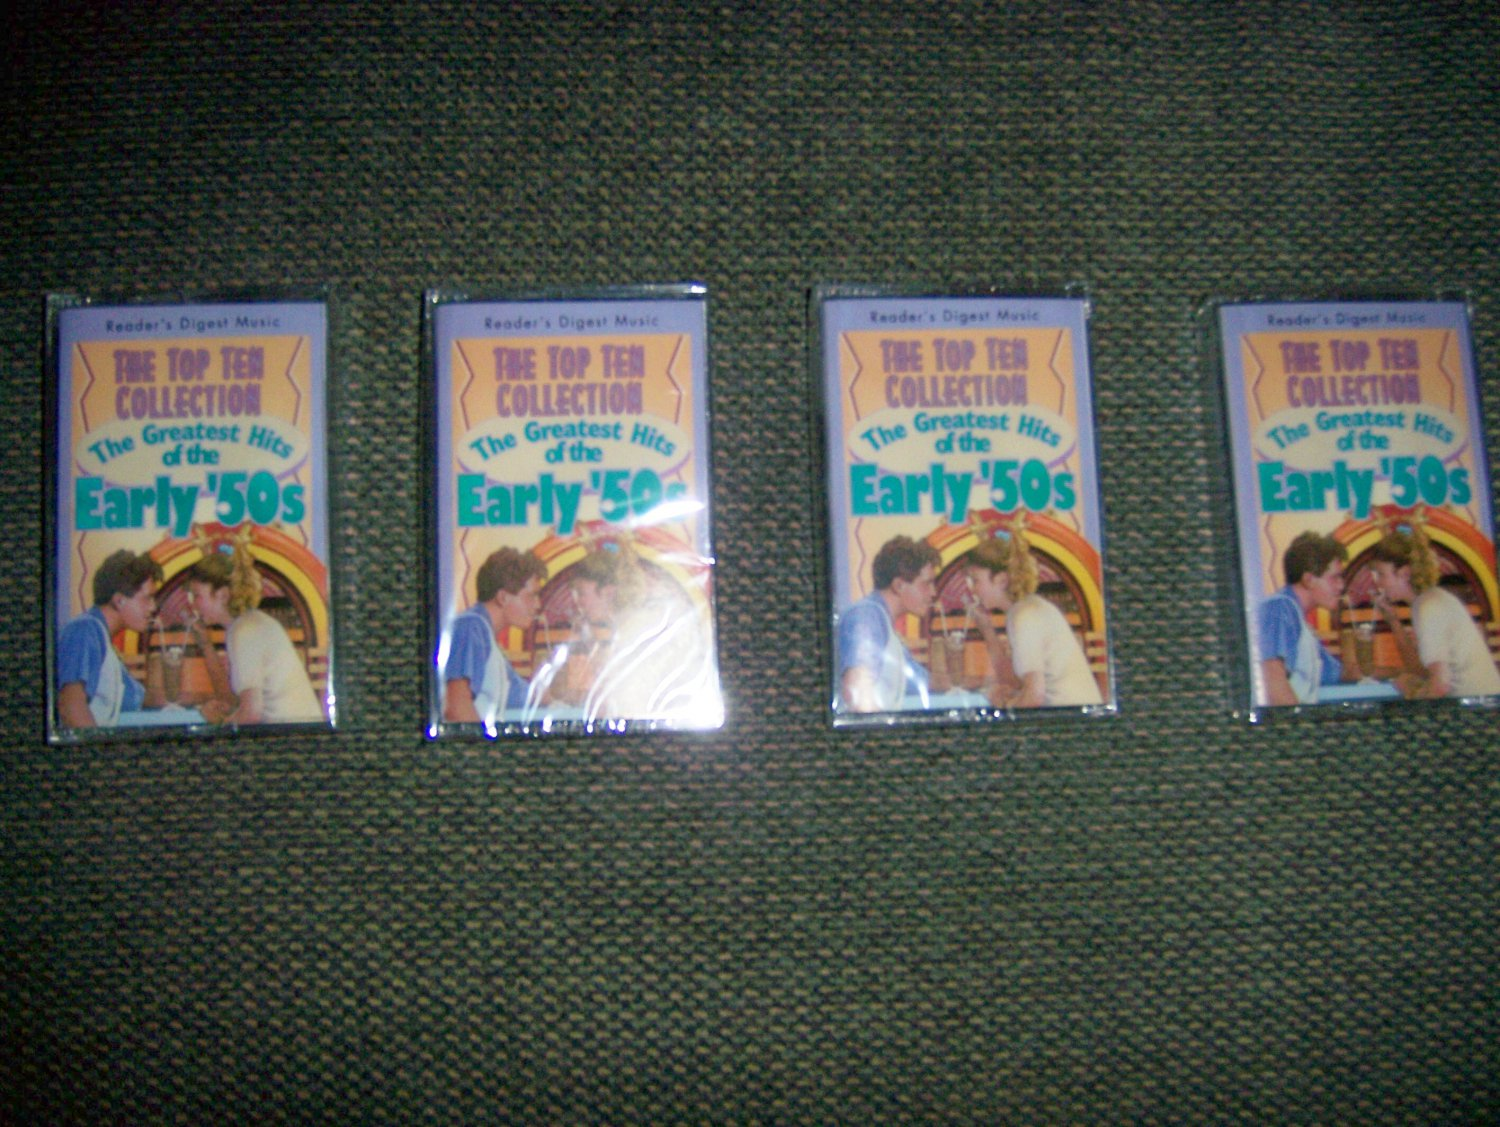 Cassettes Top Ten Collections The Greatest Hits Of Early 50's BNK1604